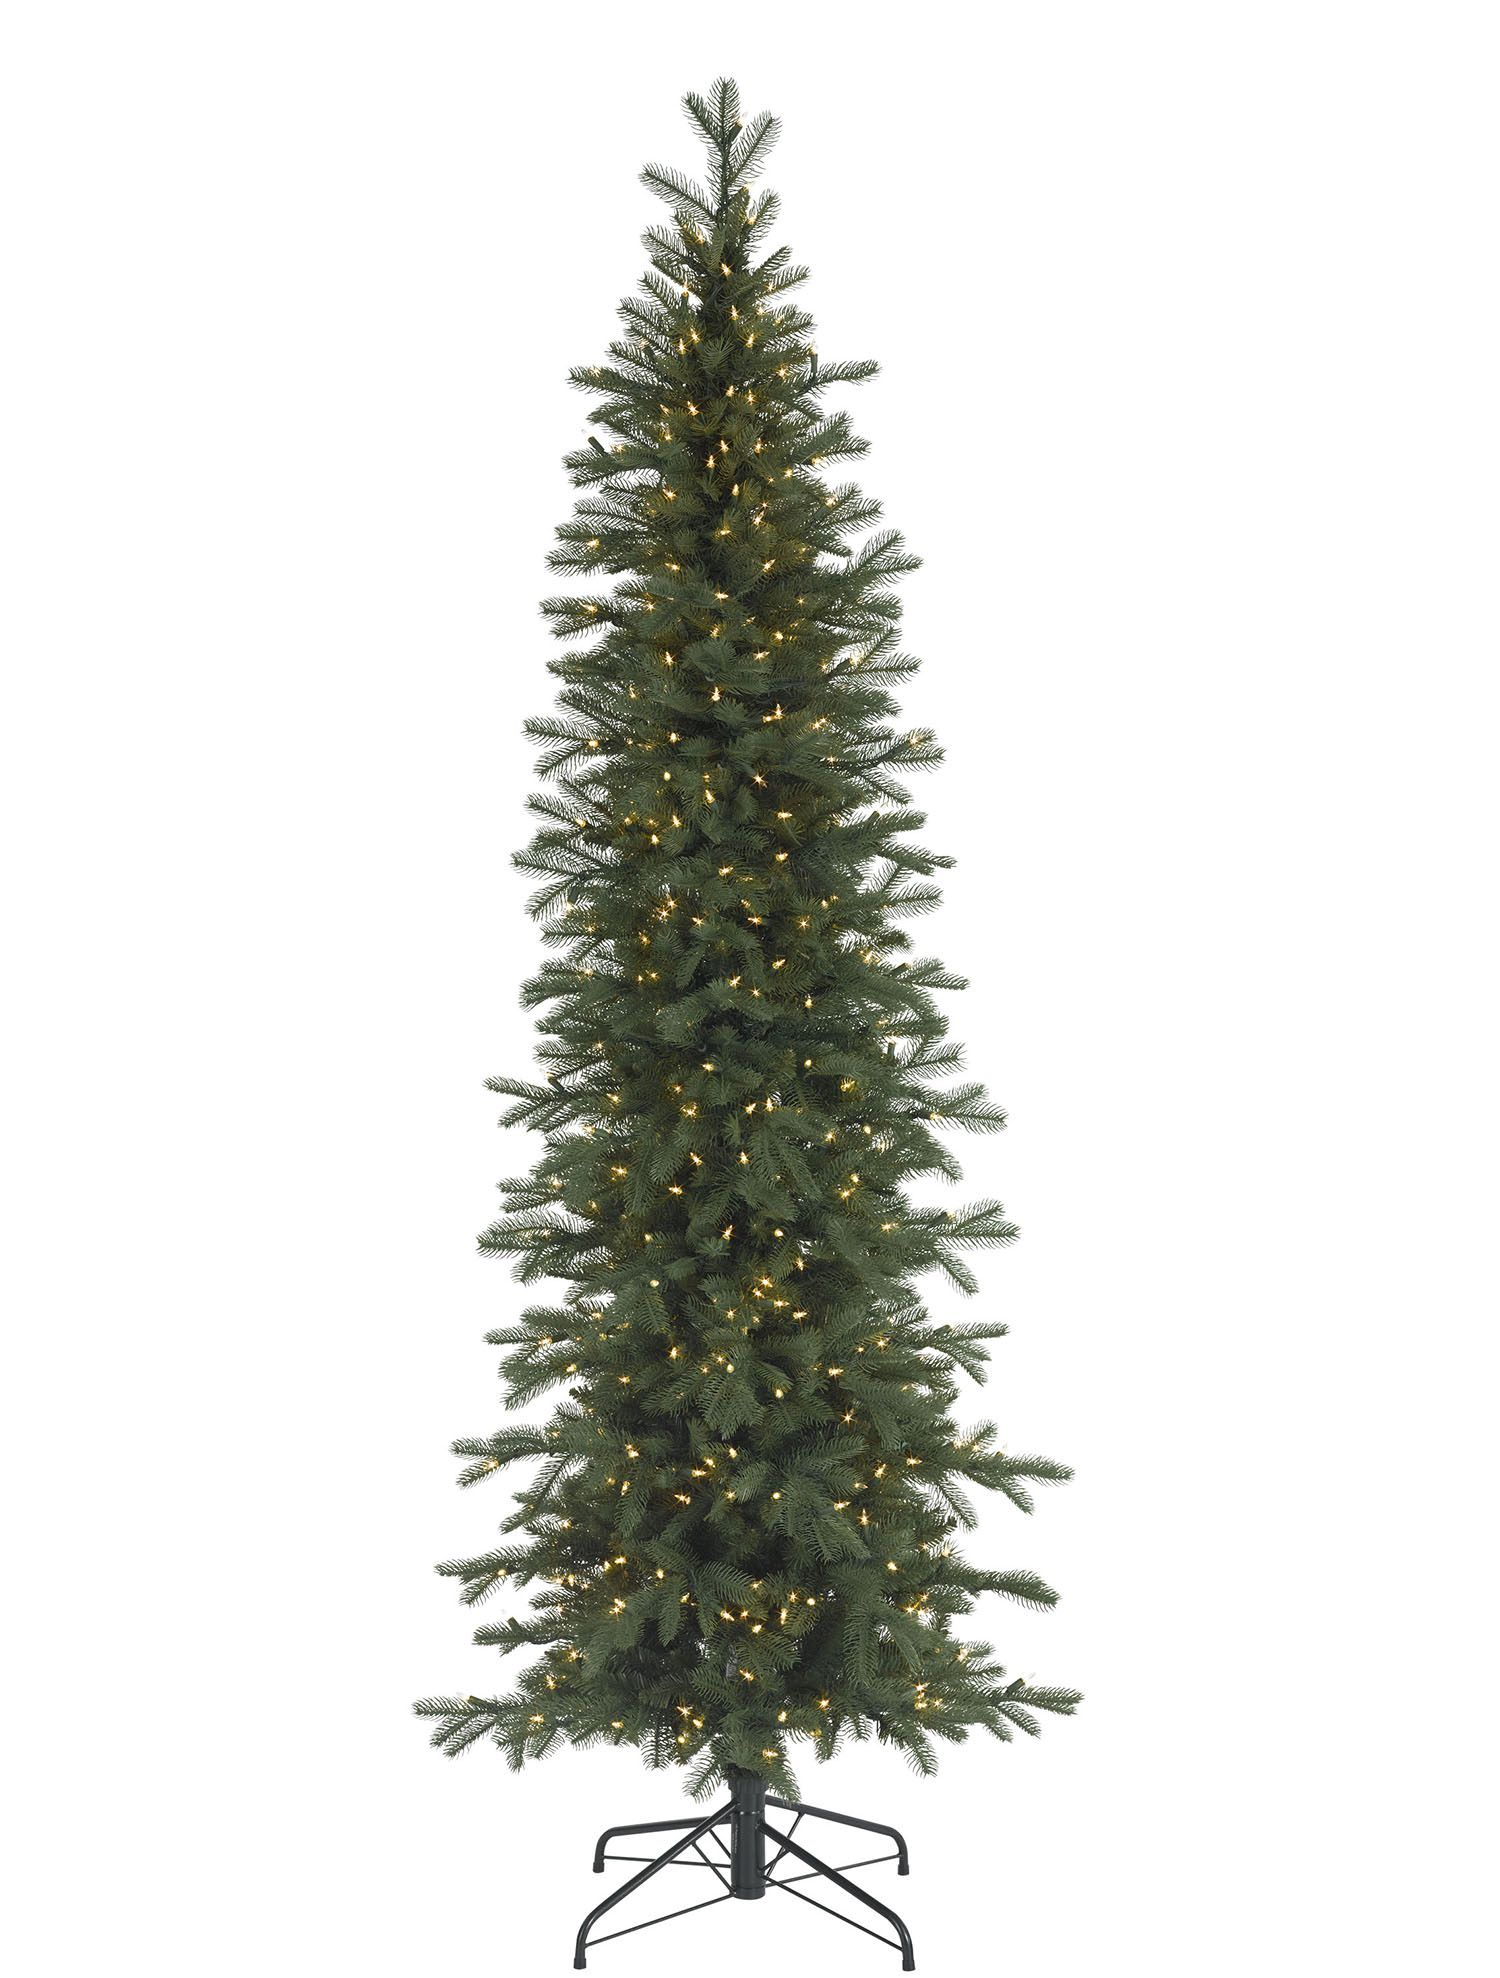 cathedral fir christmas tree - Skinny Christmas Trees